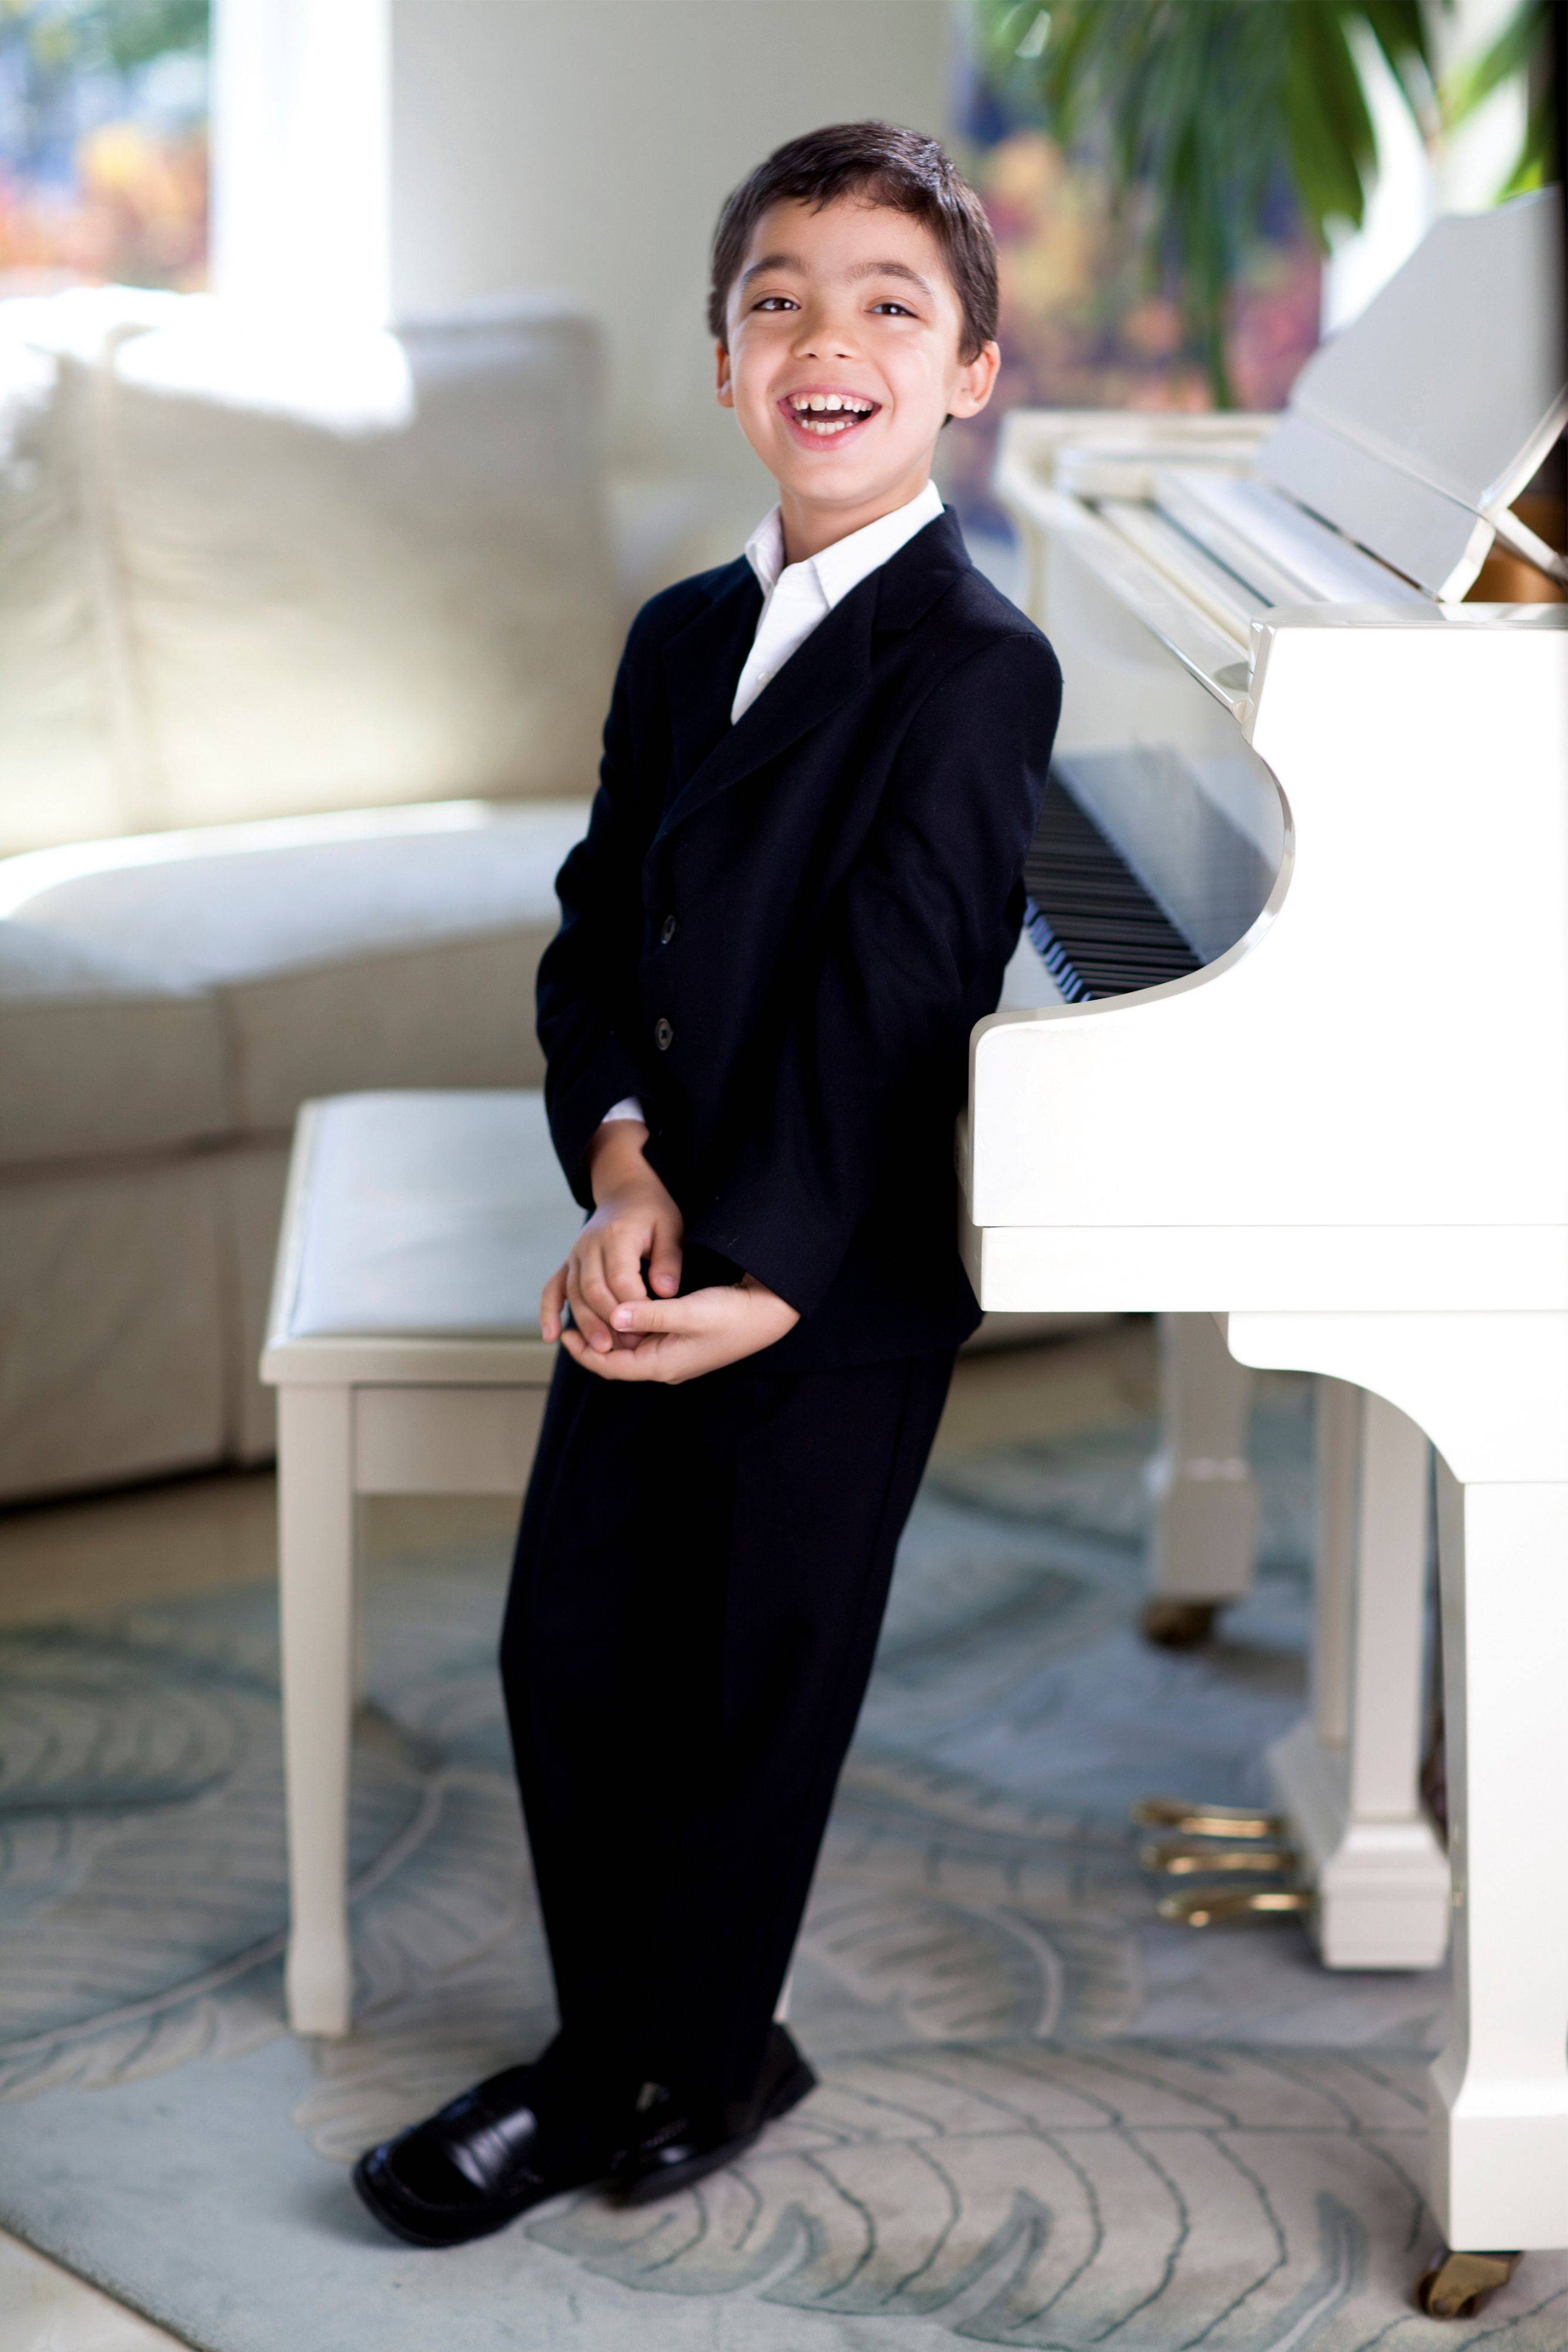 Piano prodigy Ethan Bortnick performs Friday at North Central College in Naperville.